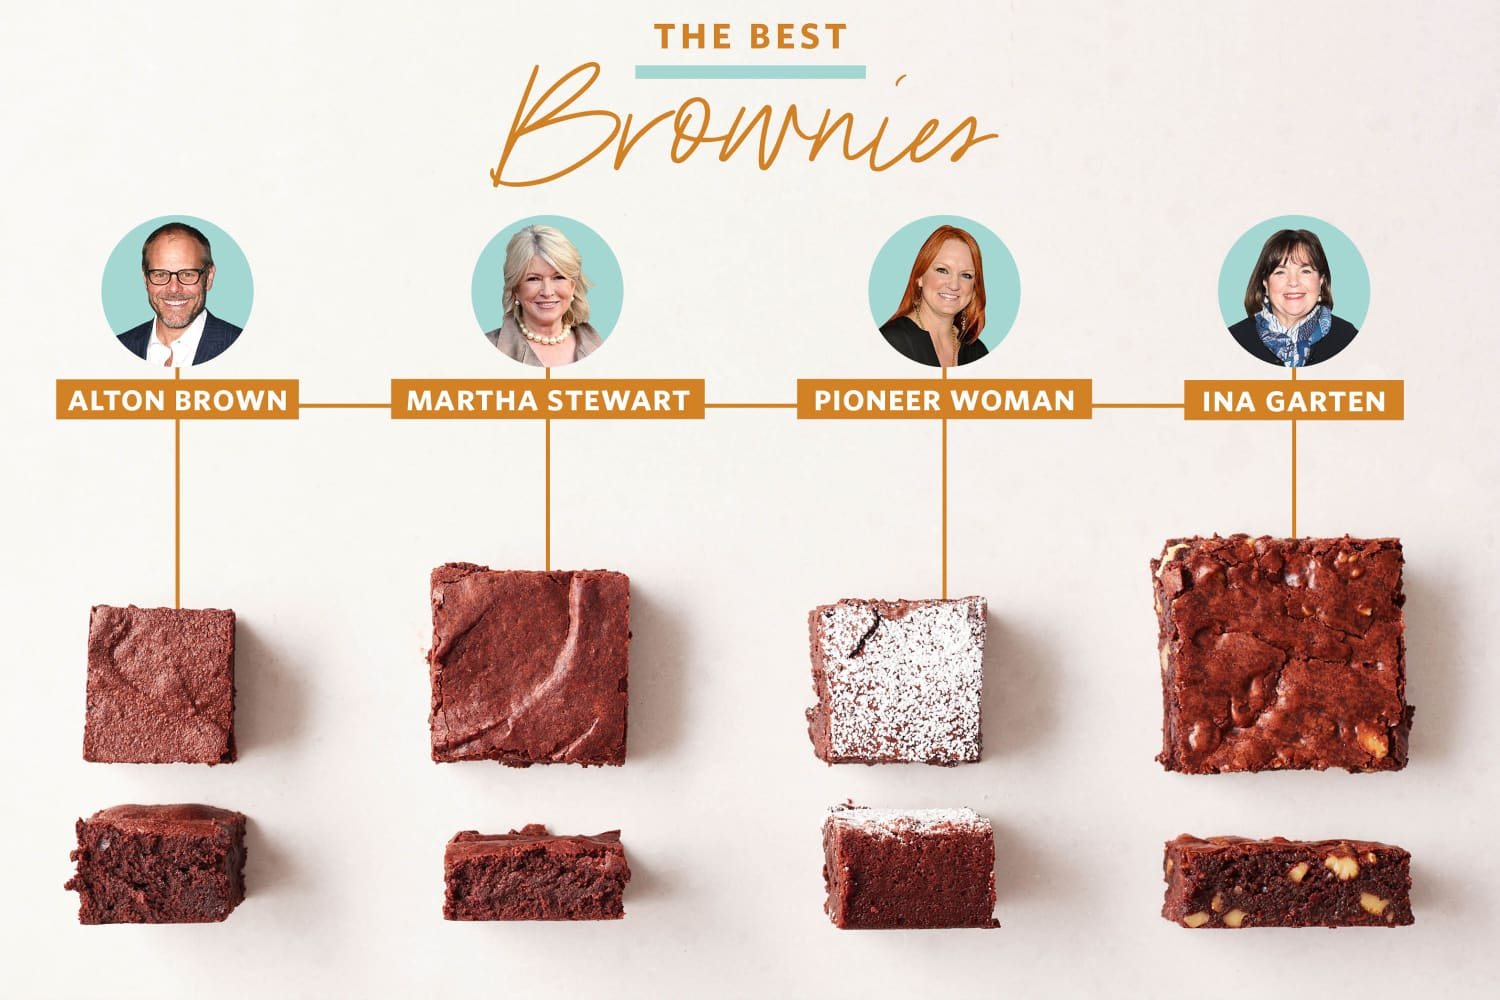 We Tested 4 Famous Brownie Recipes and Found a Clear Winner